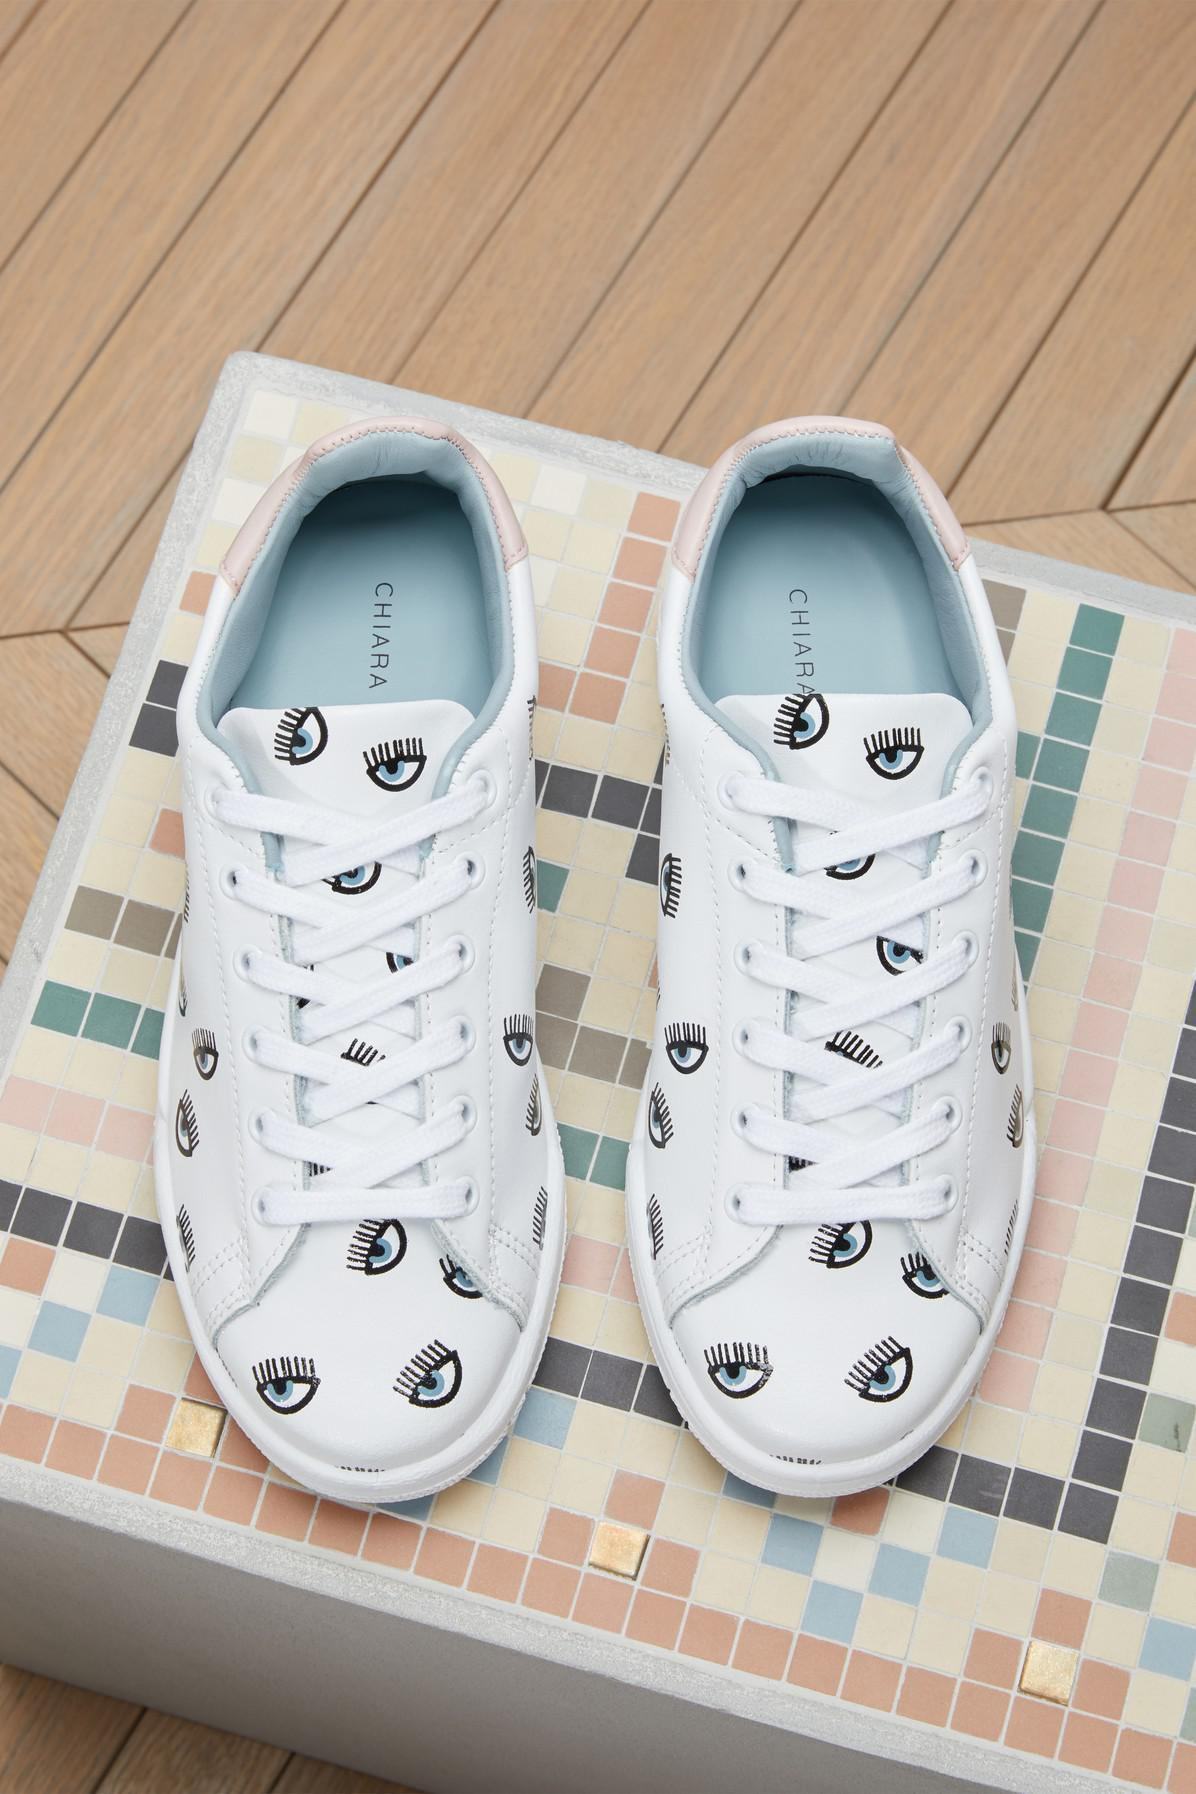 7d6f5113c6e1 Lyst - Chiara Ferragni Leather Eyes All Over Sneakers in White